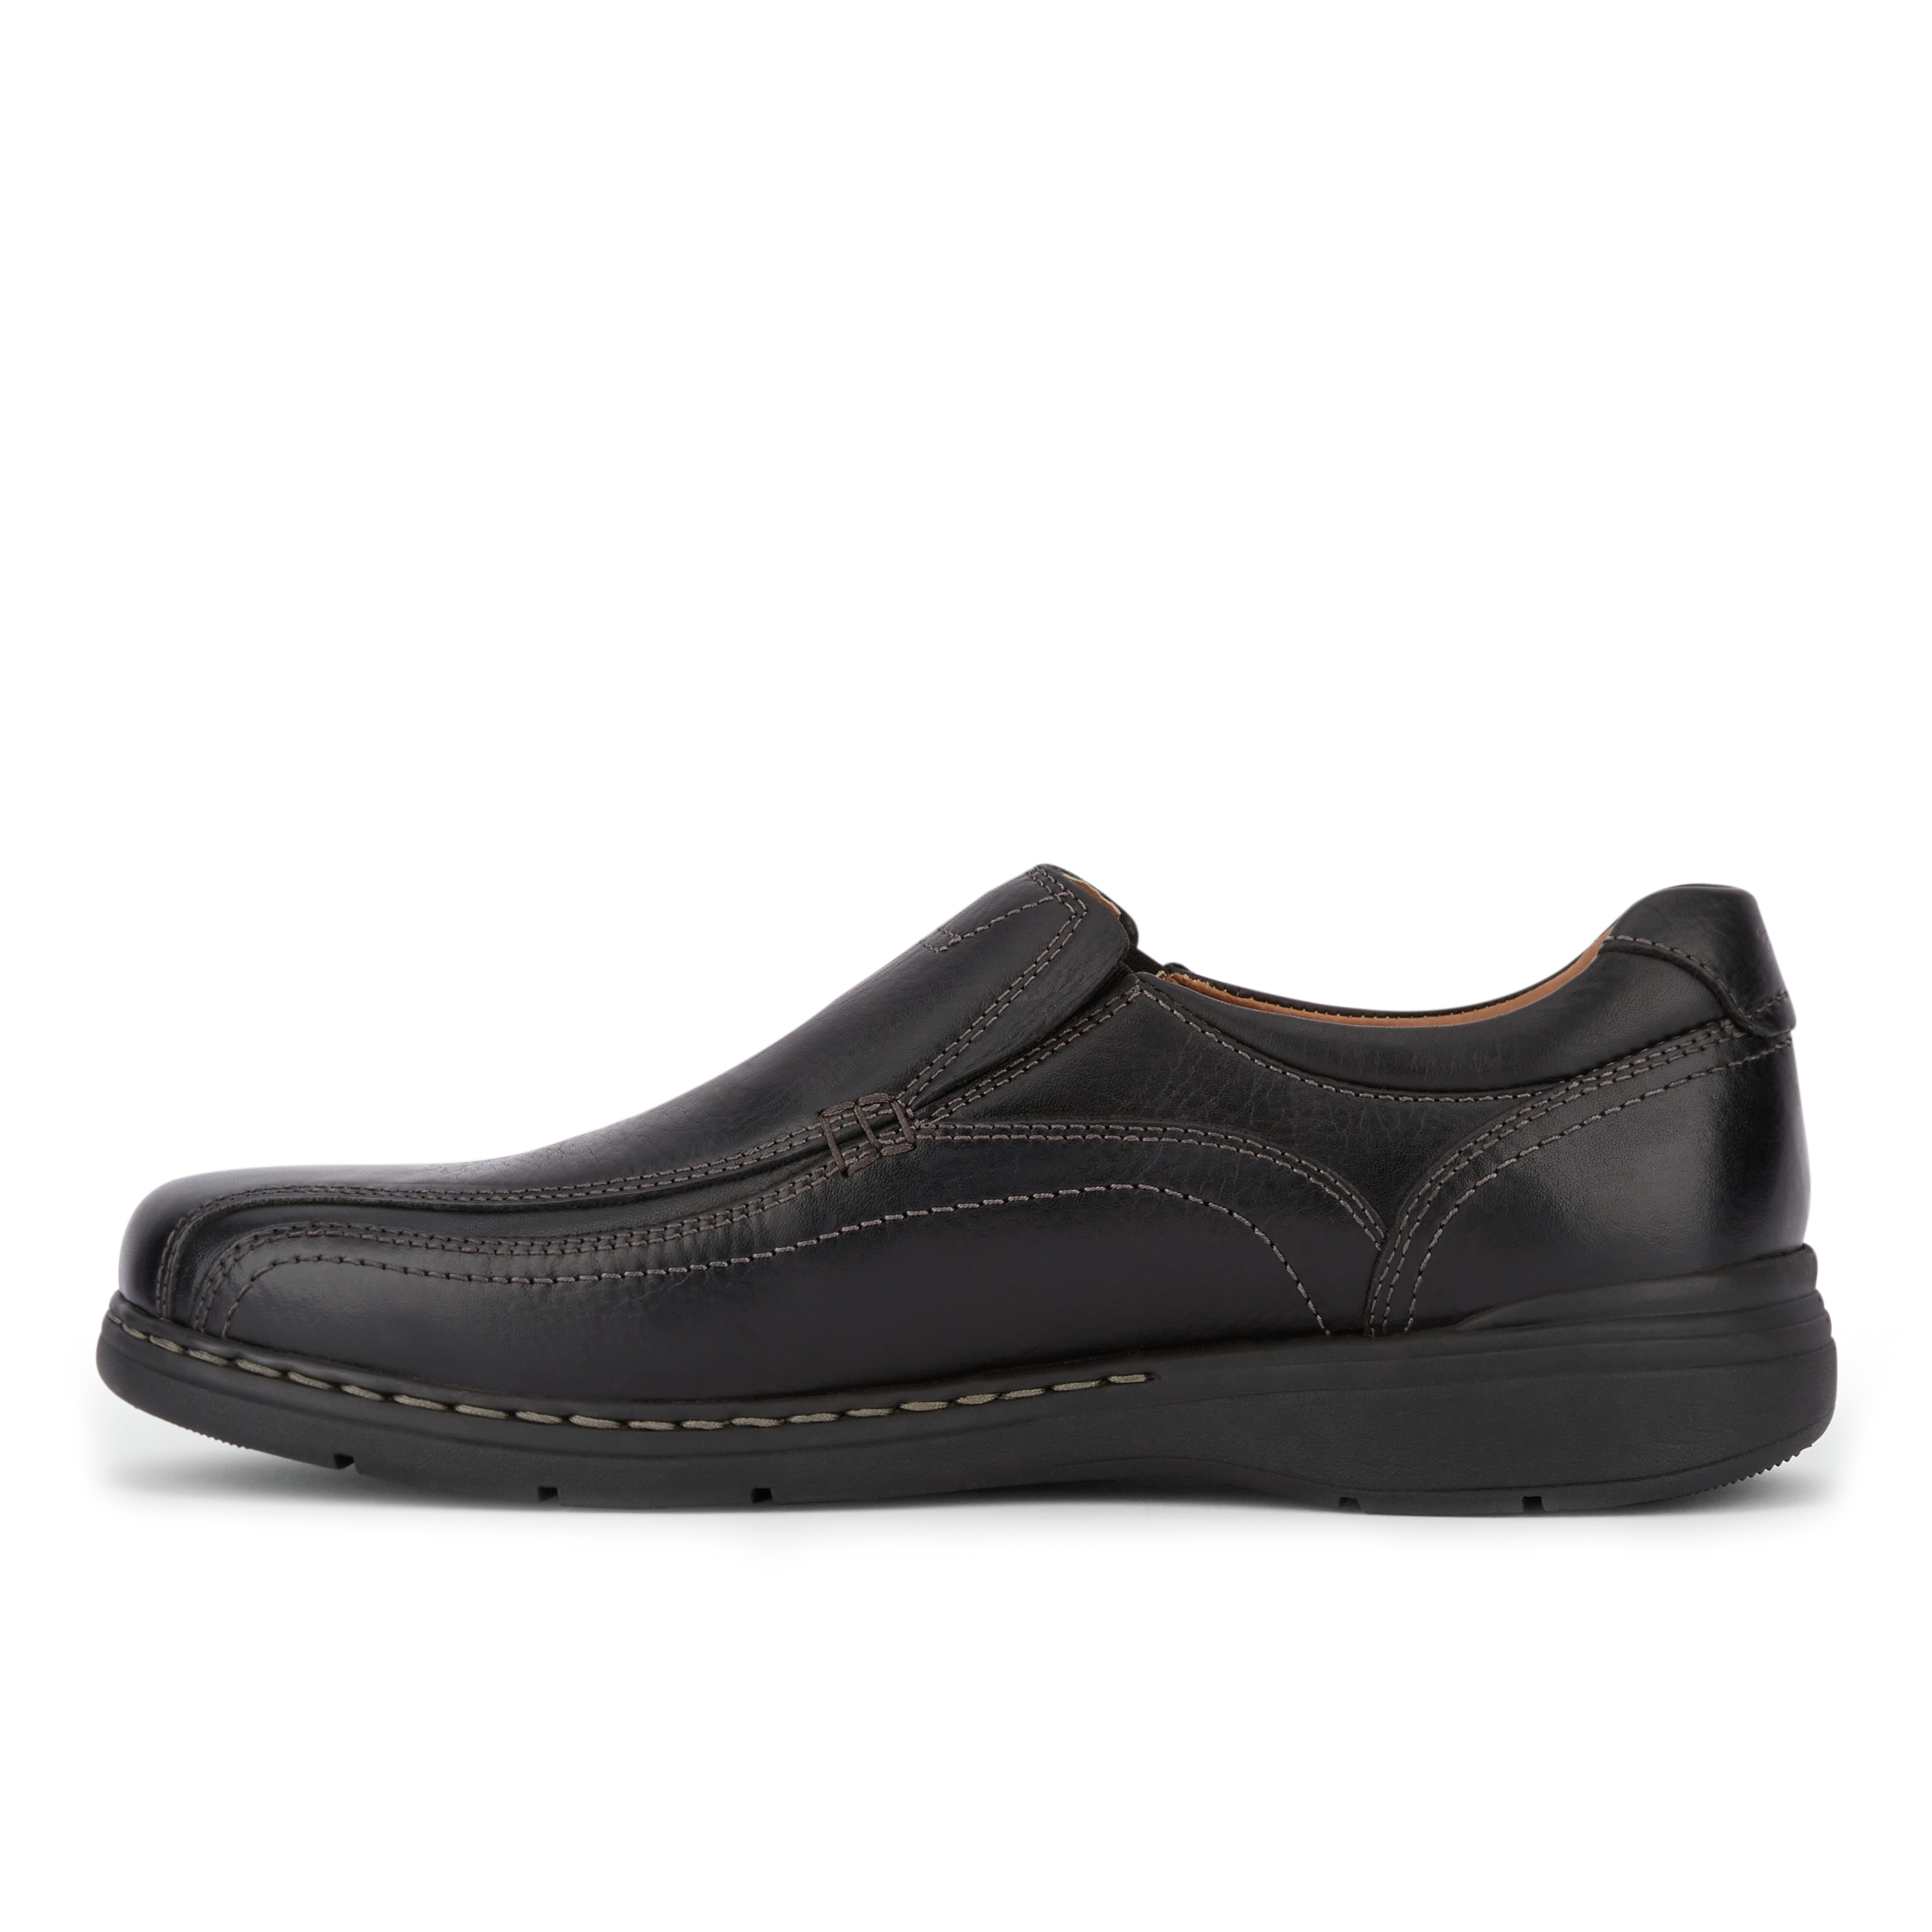 Dockers-Mens-Mosley-Genuine-Leather-Dress-Casual-Slip-on-Rubber-Sole-Shoe thumbnail 11